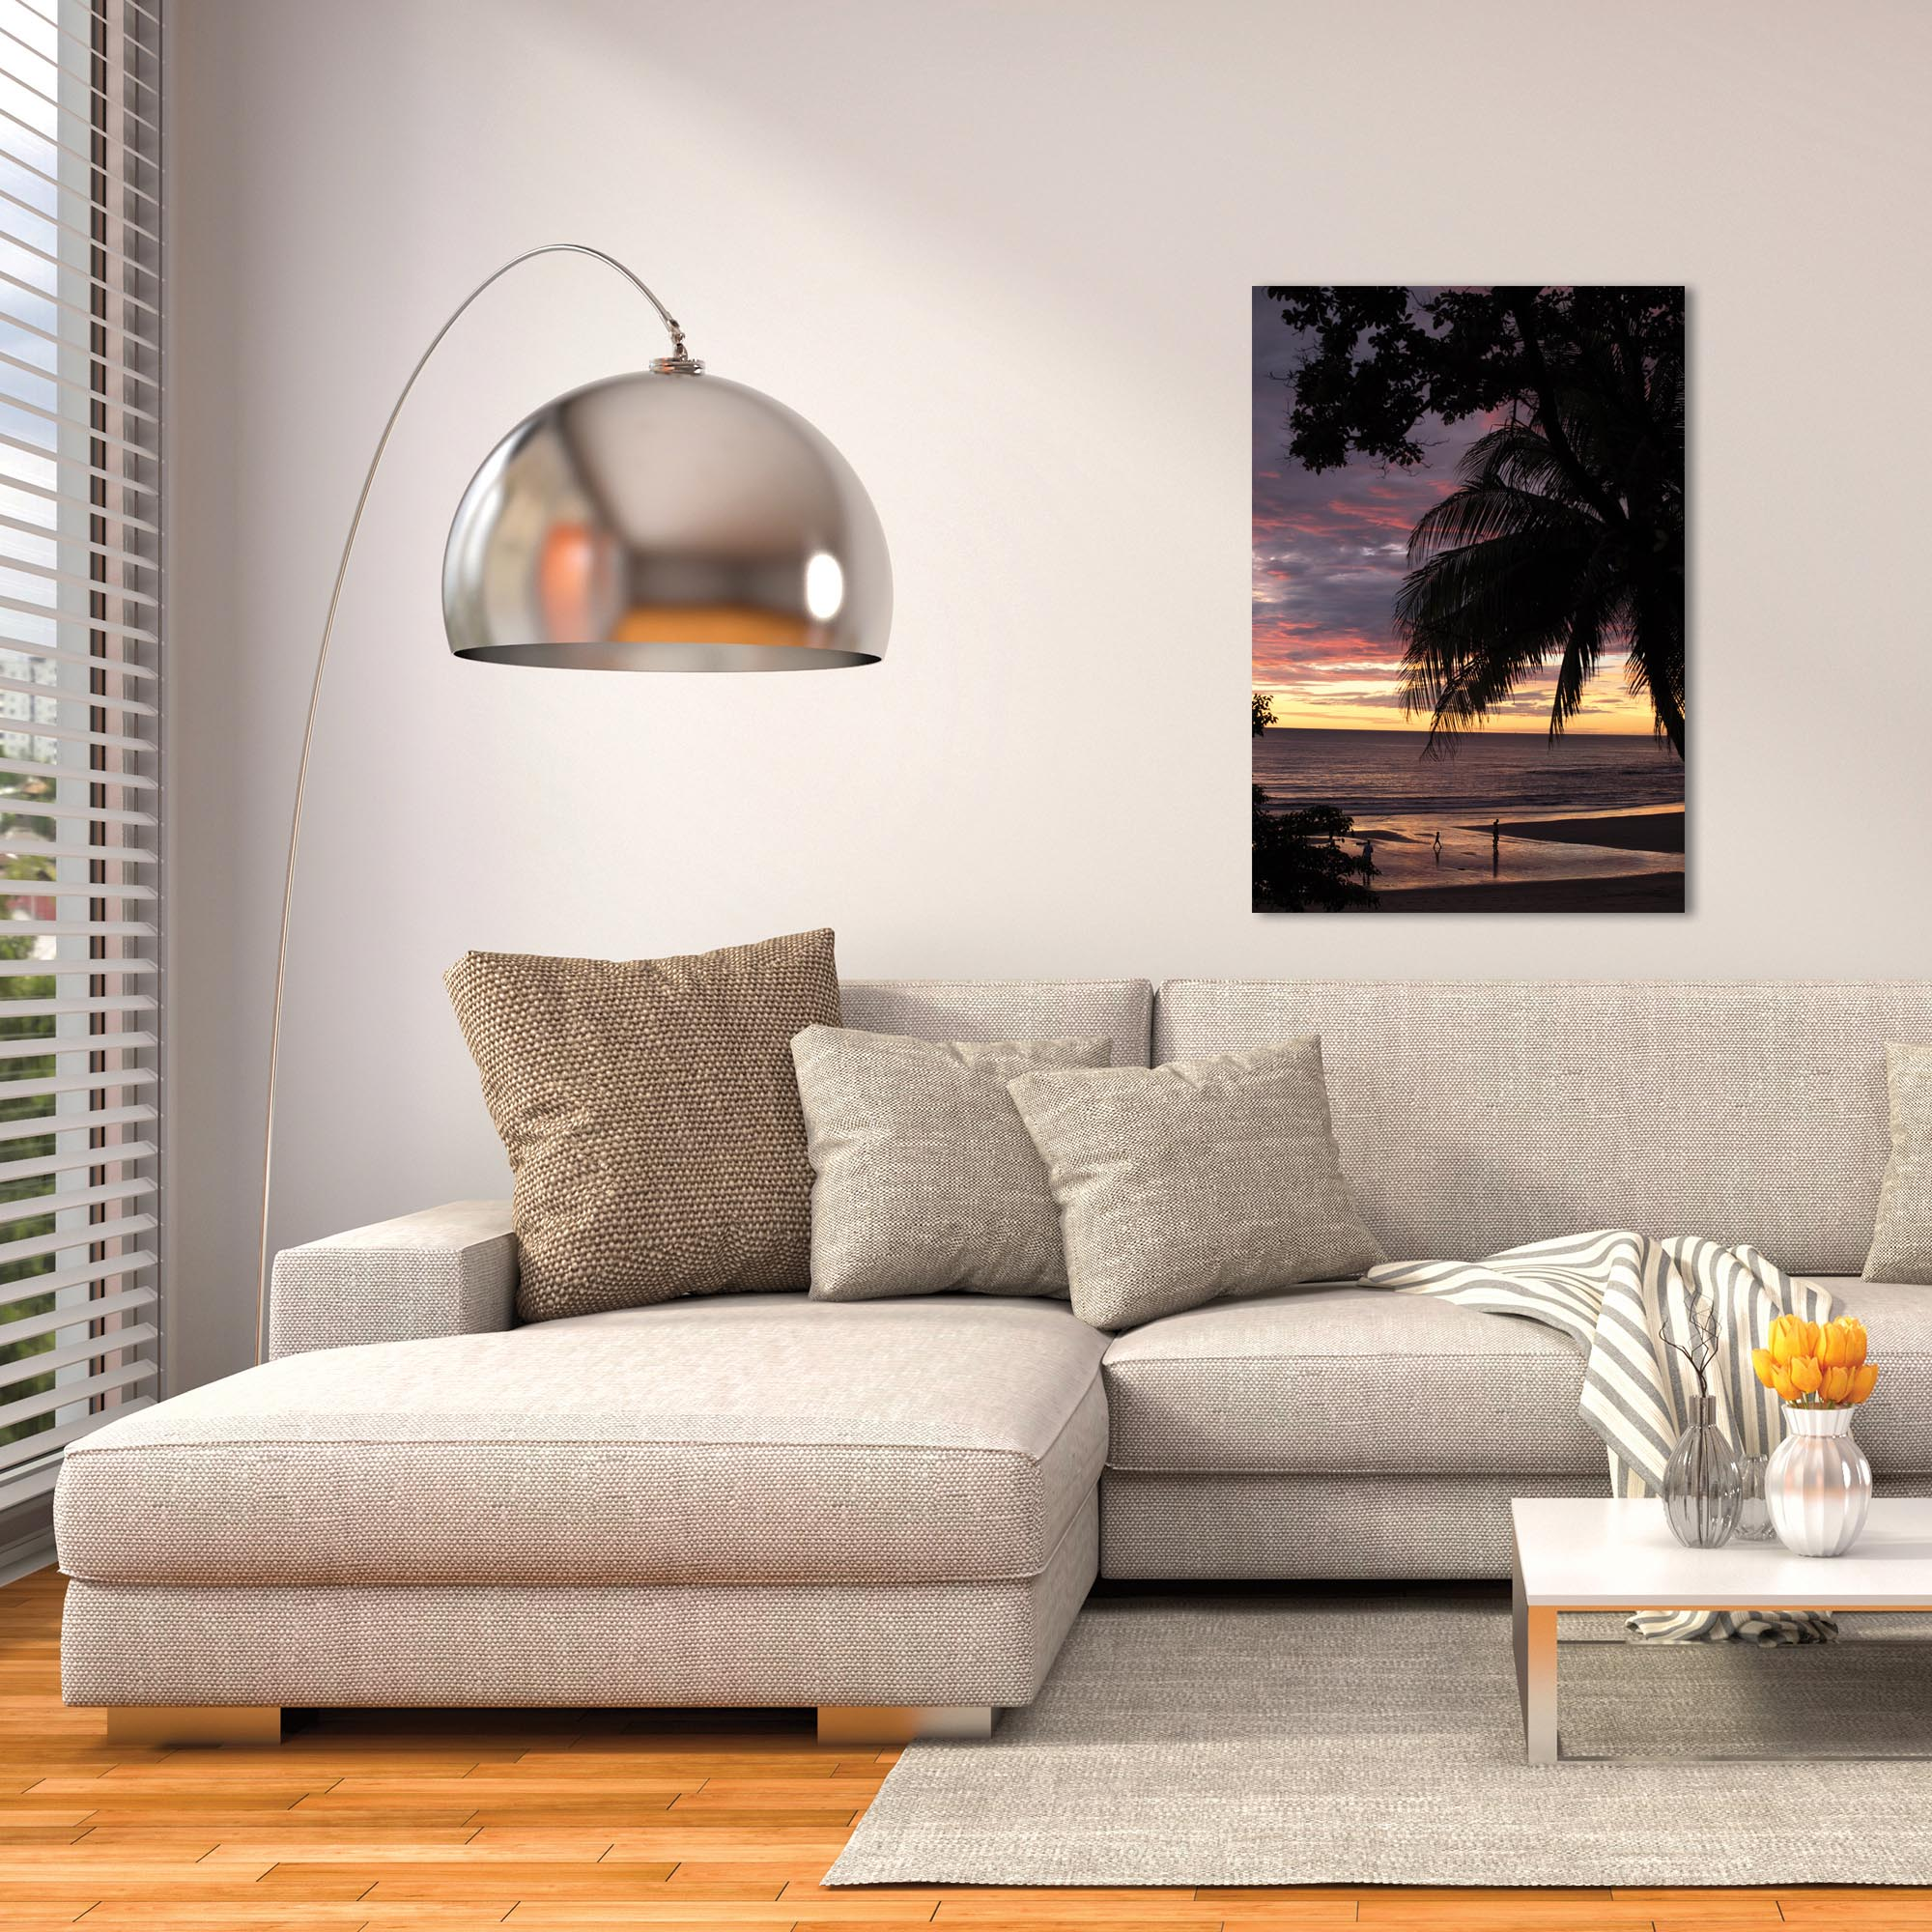 Coastal Wall Art 'Coastal Sunset Skies' - Beach Sunset Decor on Metal or Plexiglass - Lifestyle View